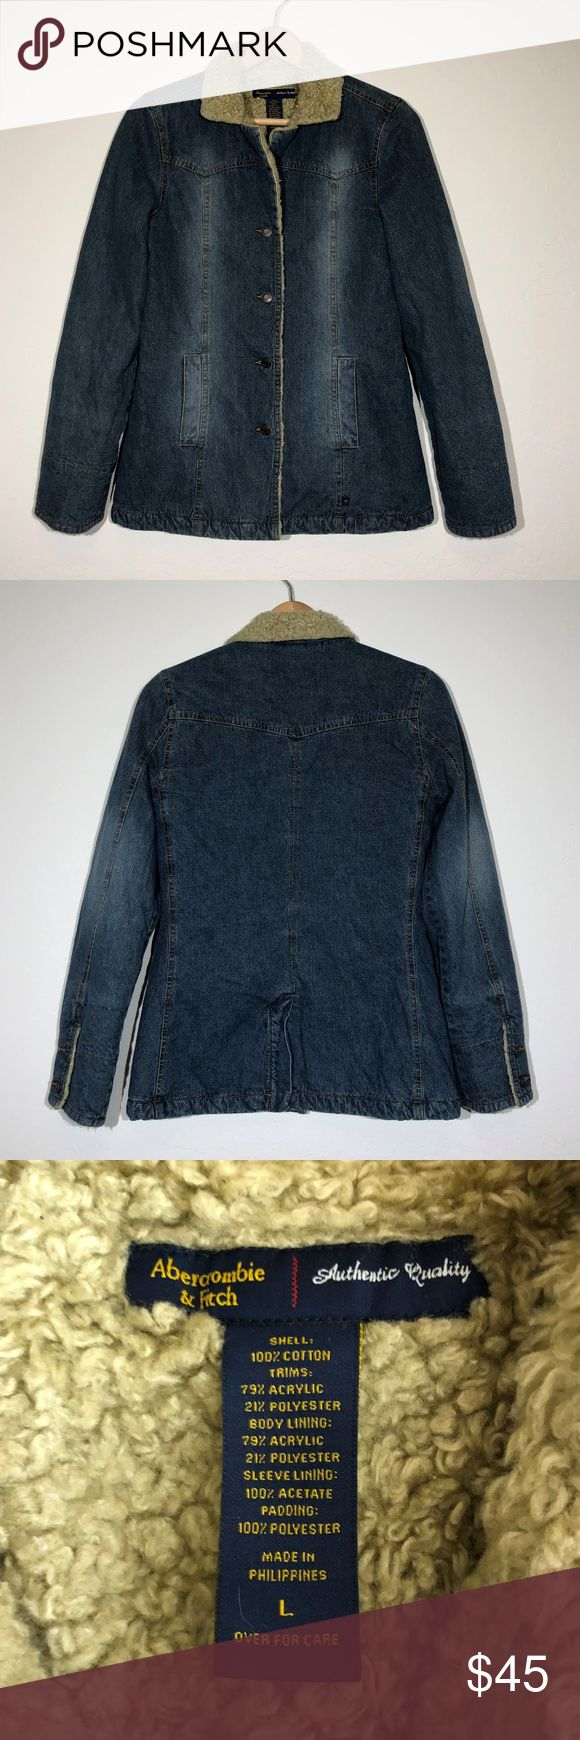 "American Eagle Outfitters Large Denim Jacket Coat Womens American Eagle Outfitters jean jacket size large. Faux Sherpa lined. Button down front. Long sleeve coat style. Gently used with no flaws.   Measurements when laying flat: bust 17"" length 27"" American Eagle Outfitters Jackets & Coats Jean Jackets"